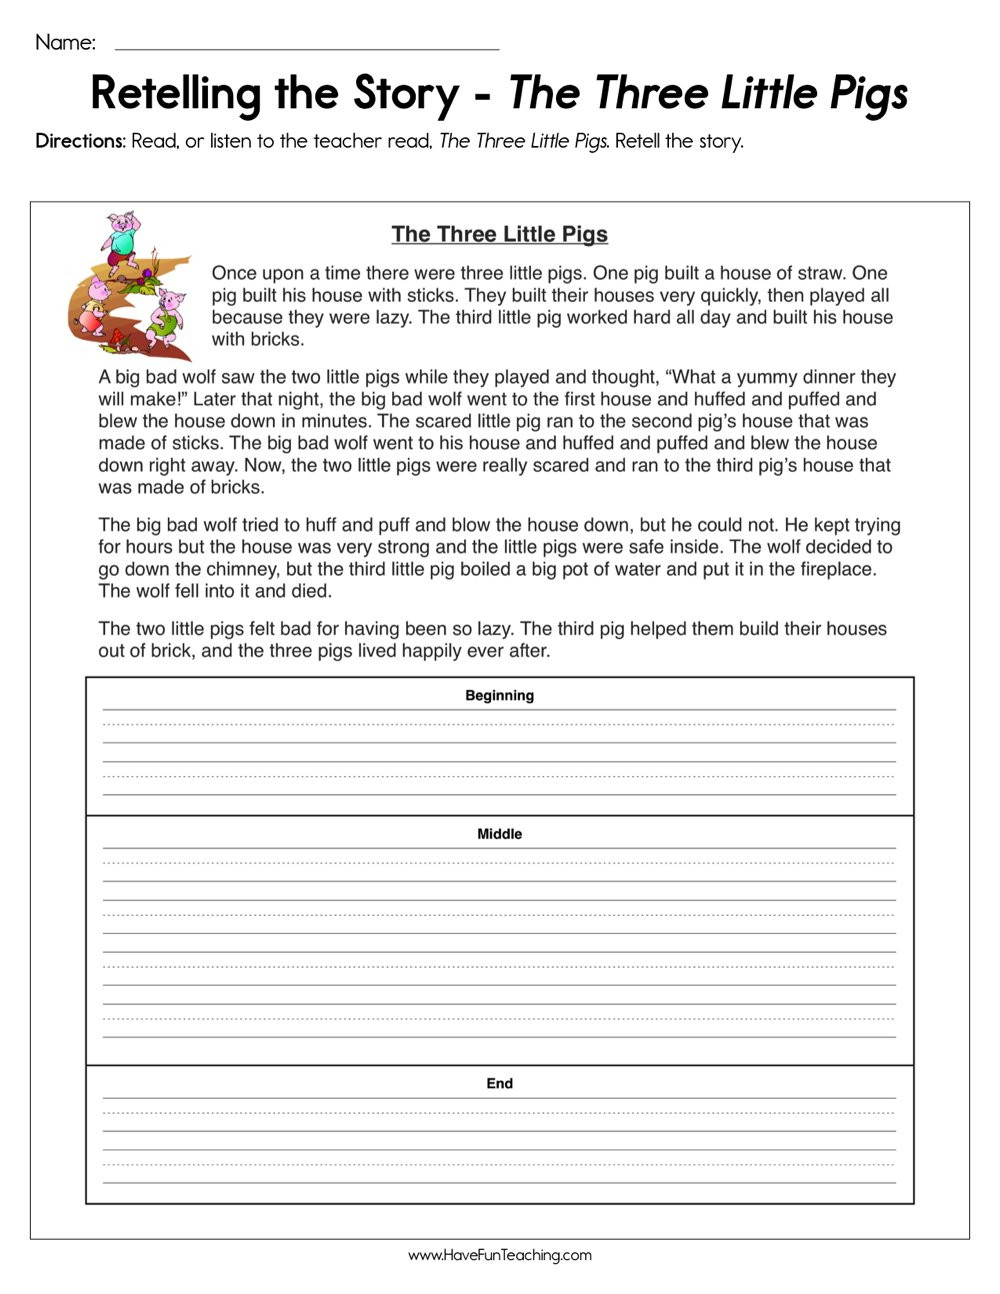 Summary Worksheets 5th Grade Retelling the Story the Three Little Pigs Worksheet